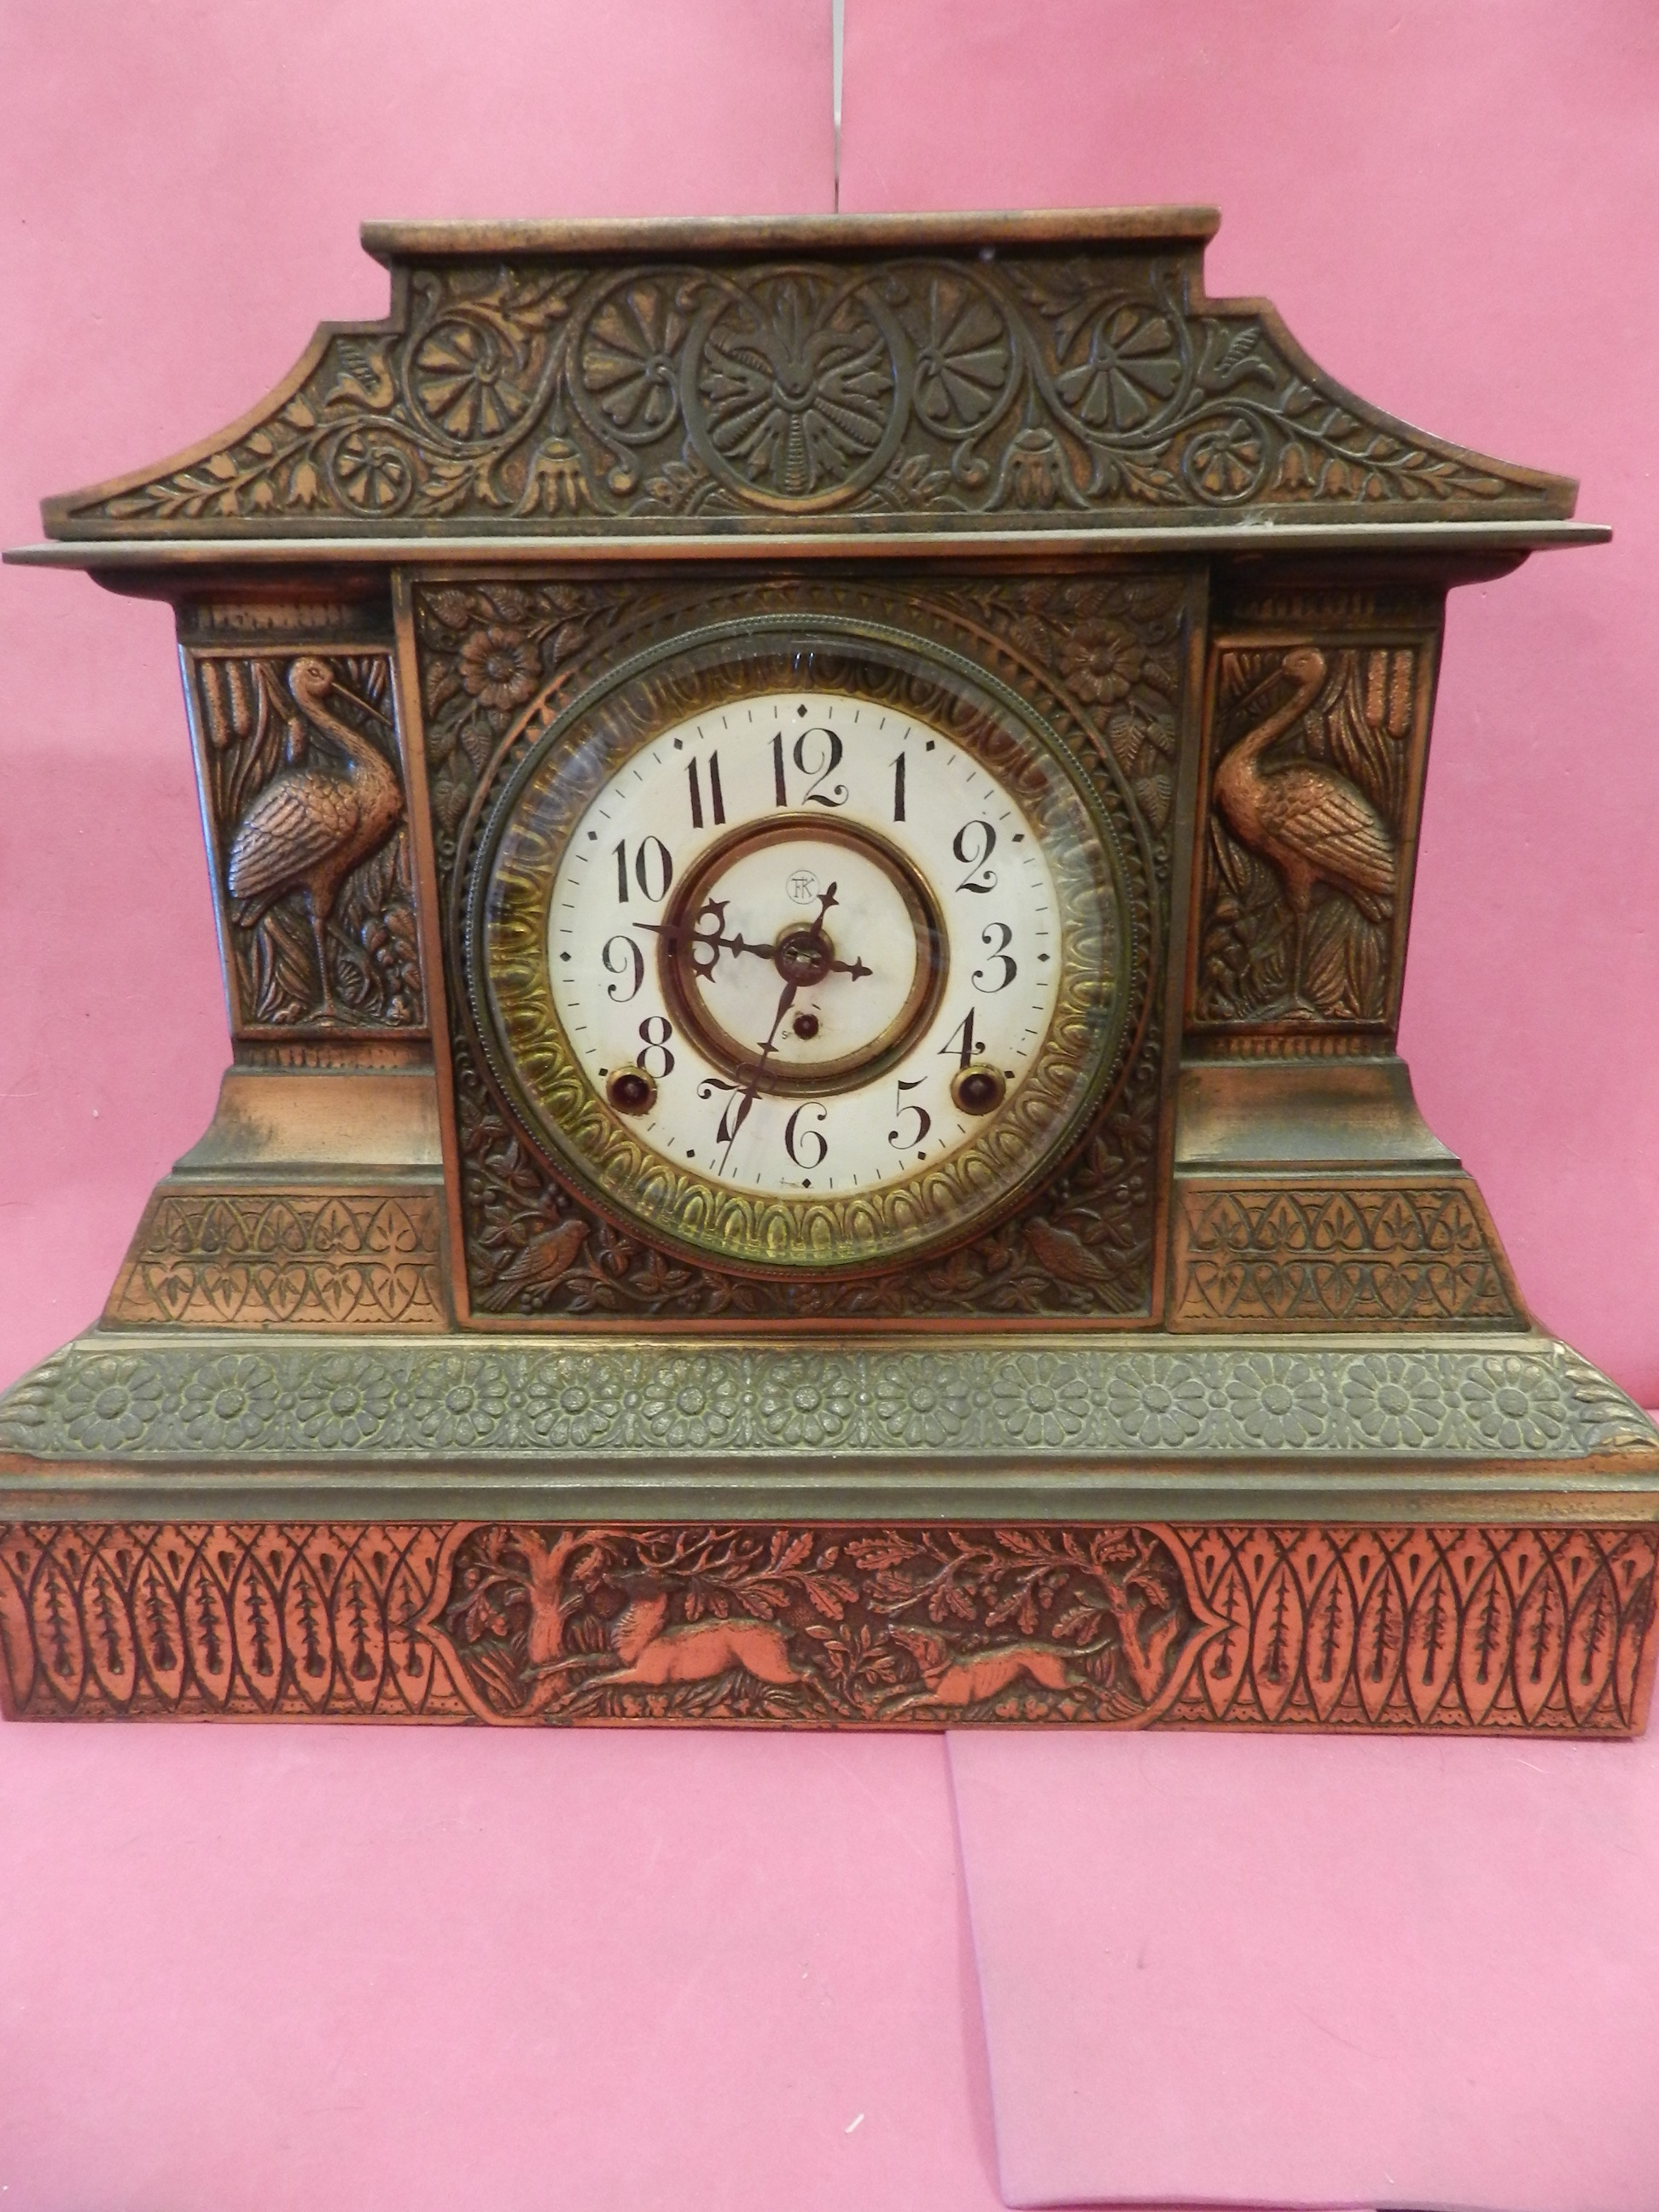 1900's COPPER MANTLE CLOCK